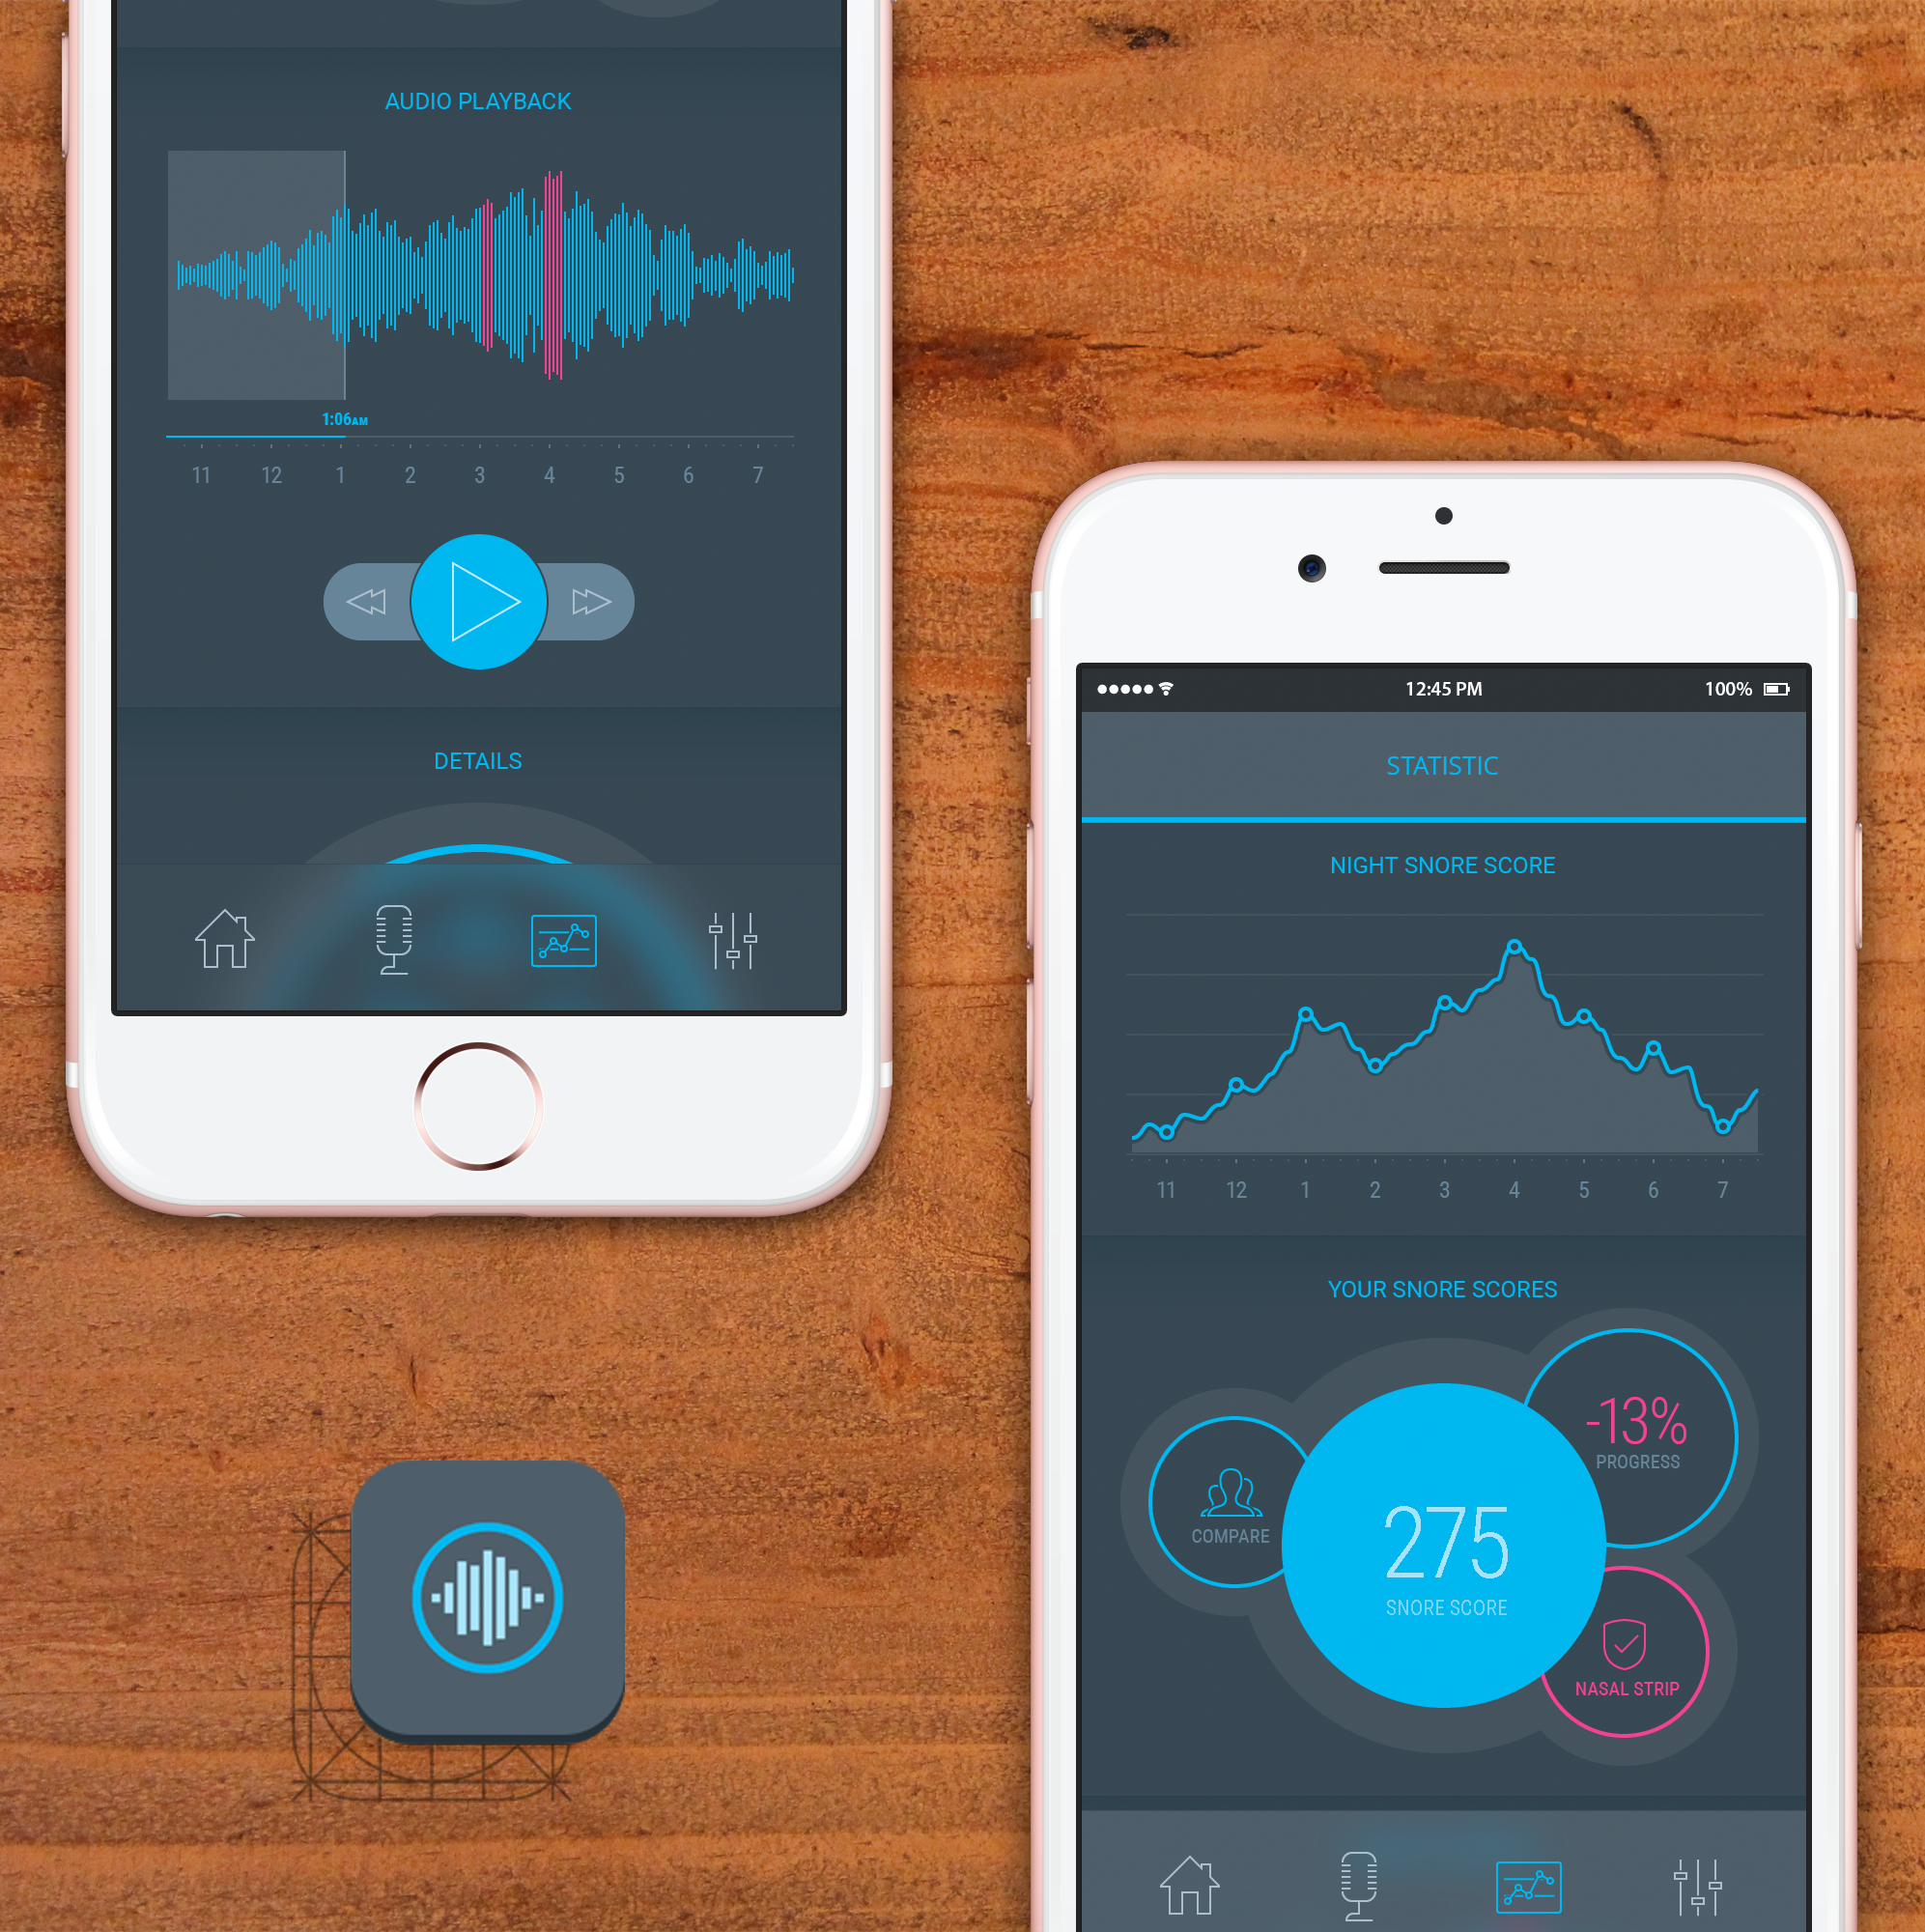 Snore tracking mobile app